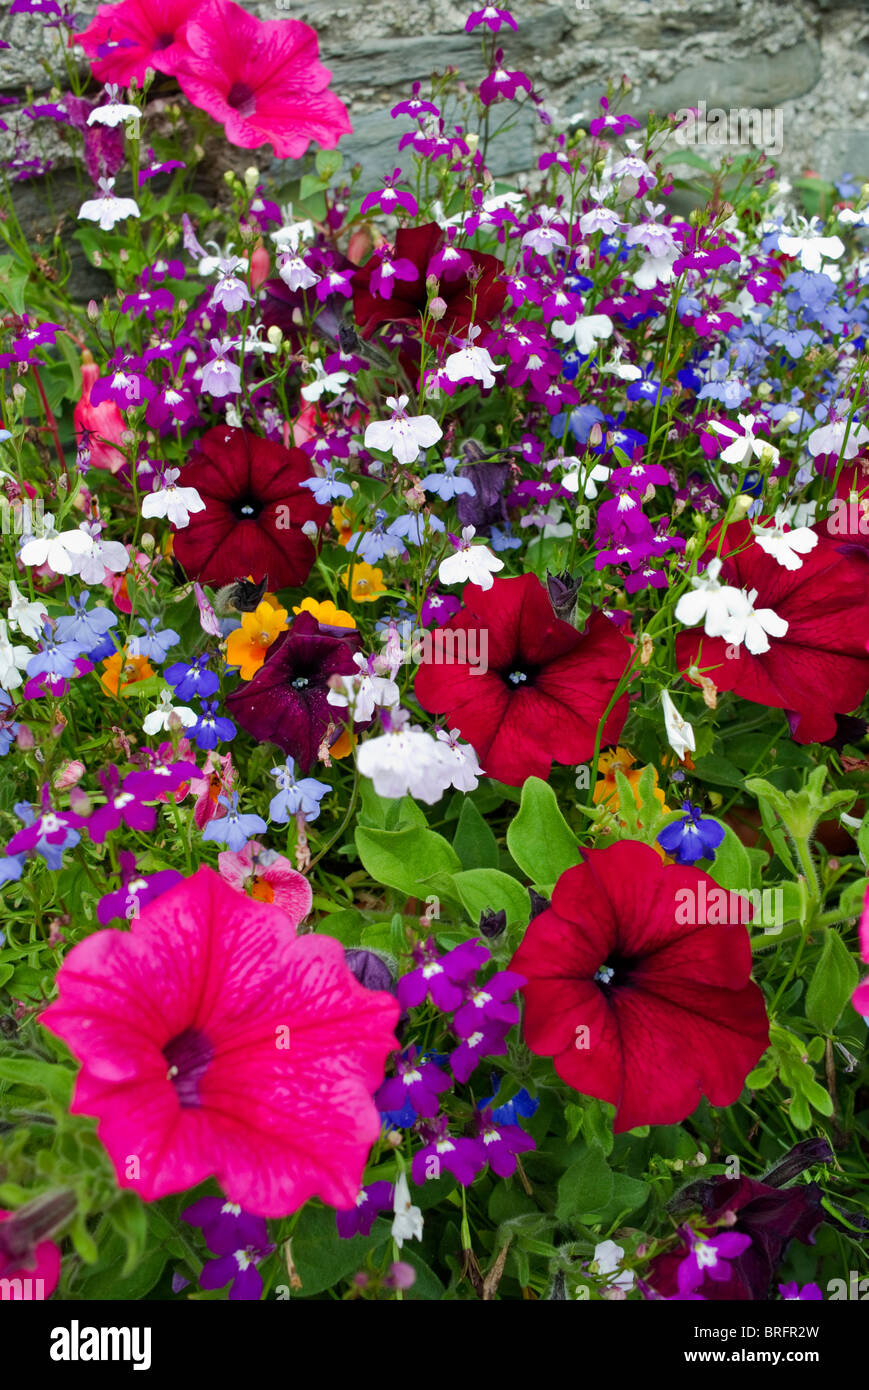 A massive array of colorful flowers in a window box Stock Photo